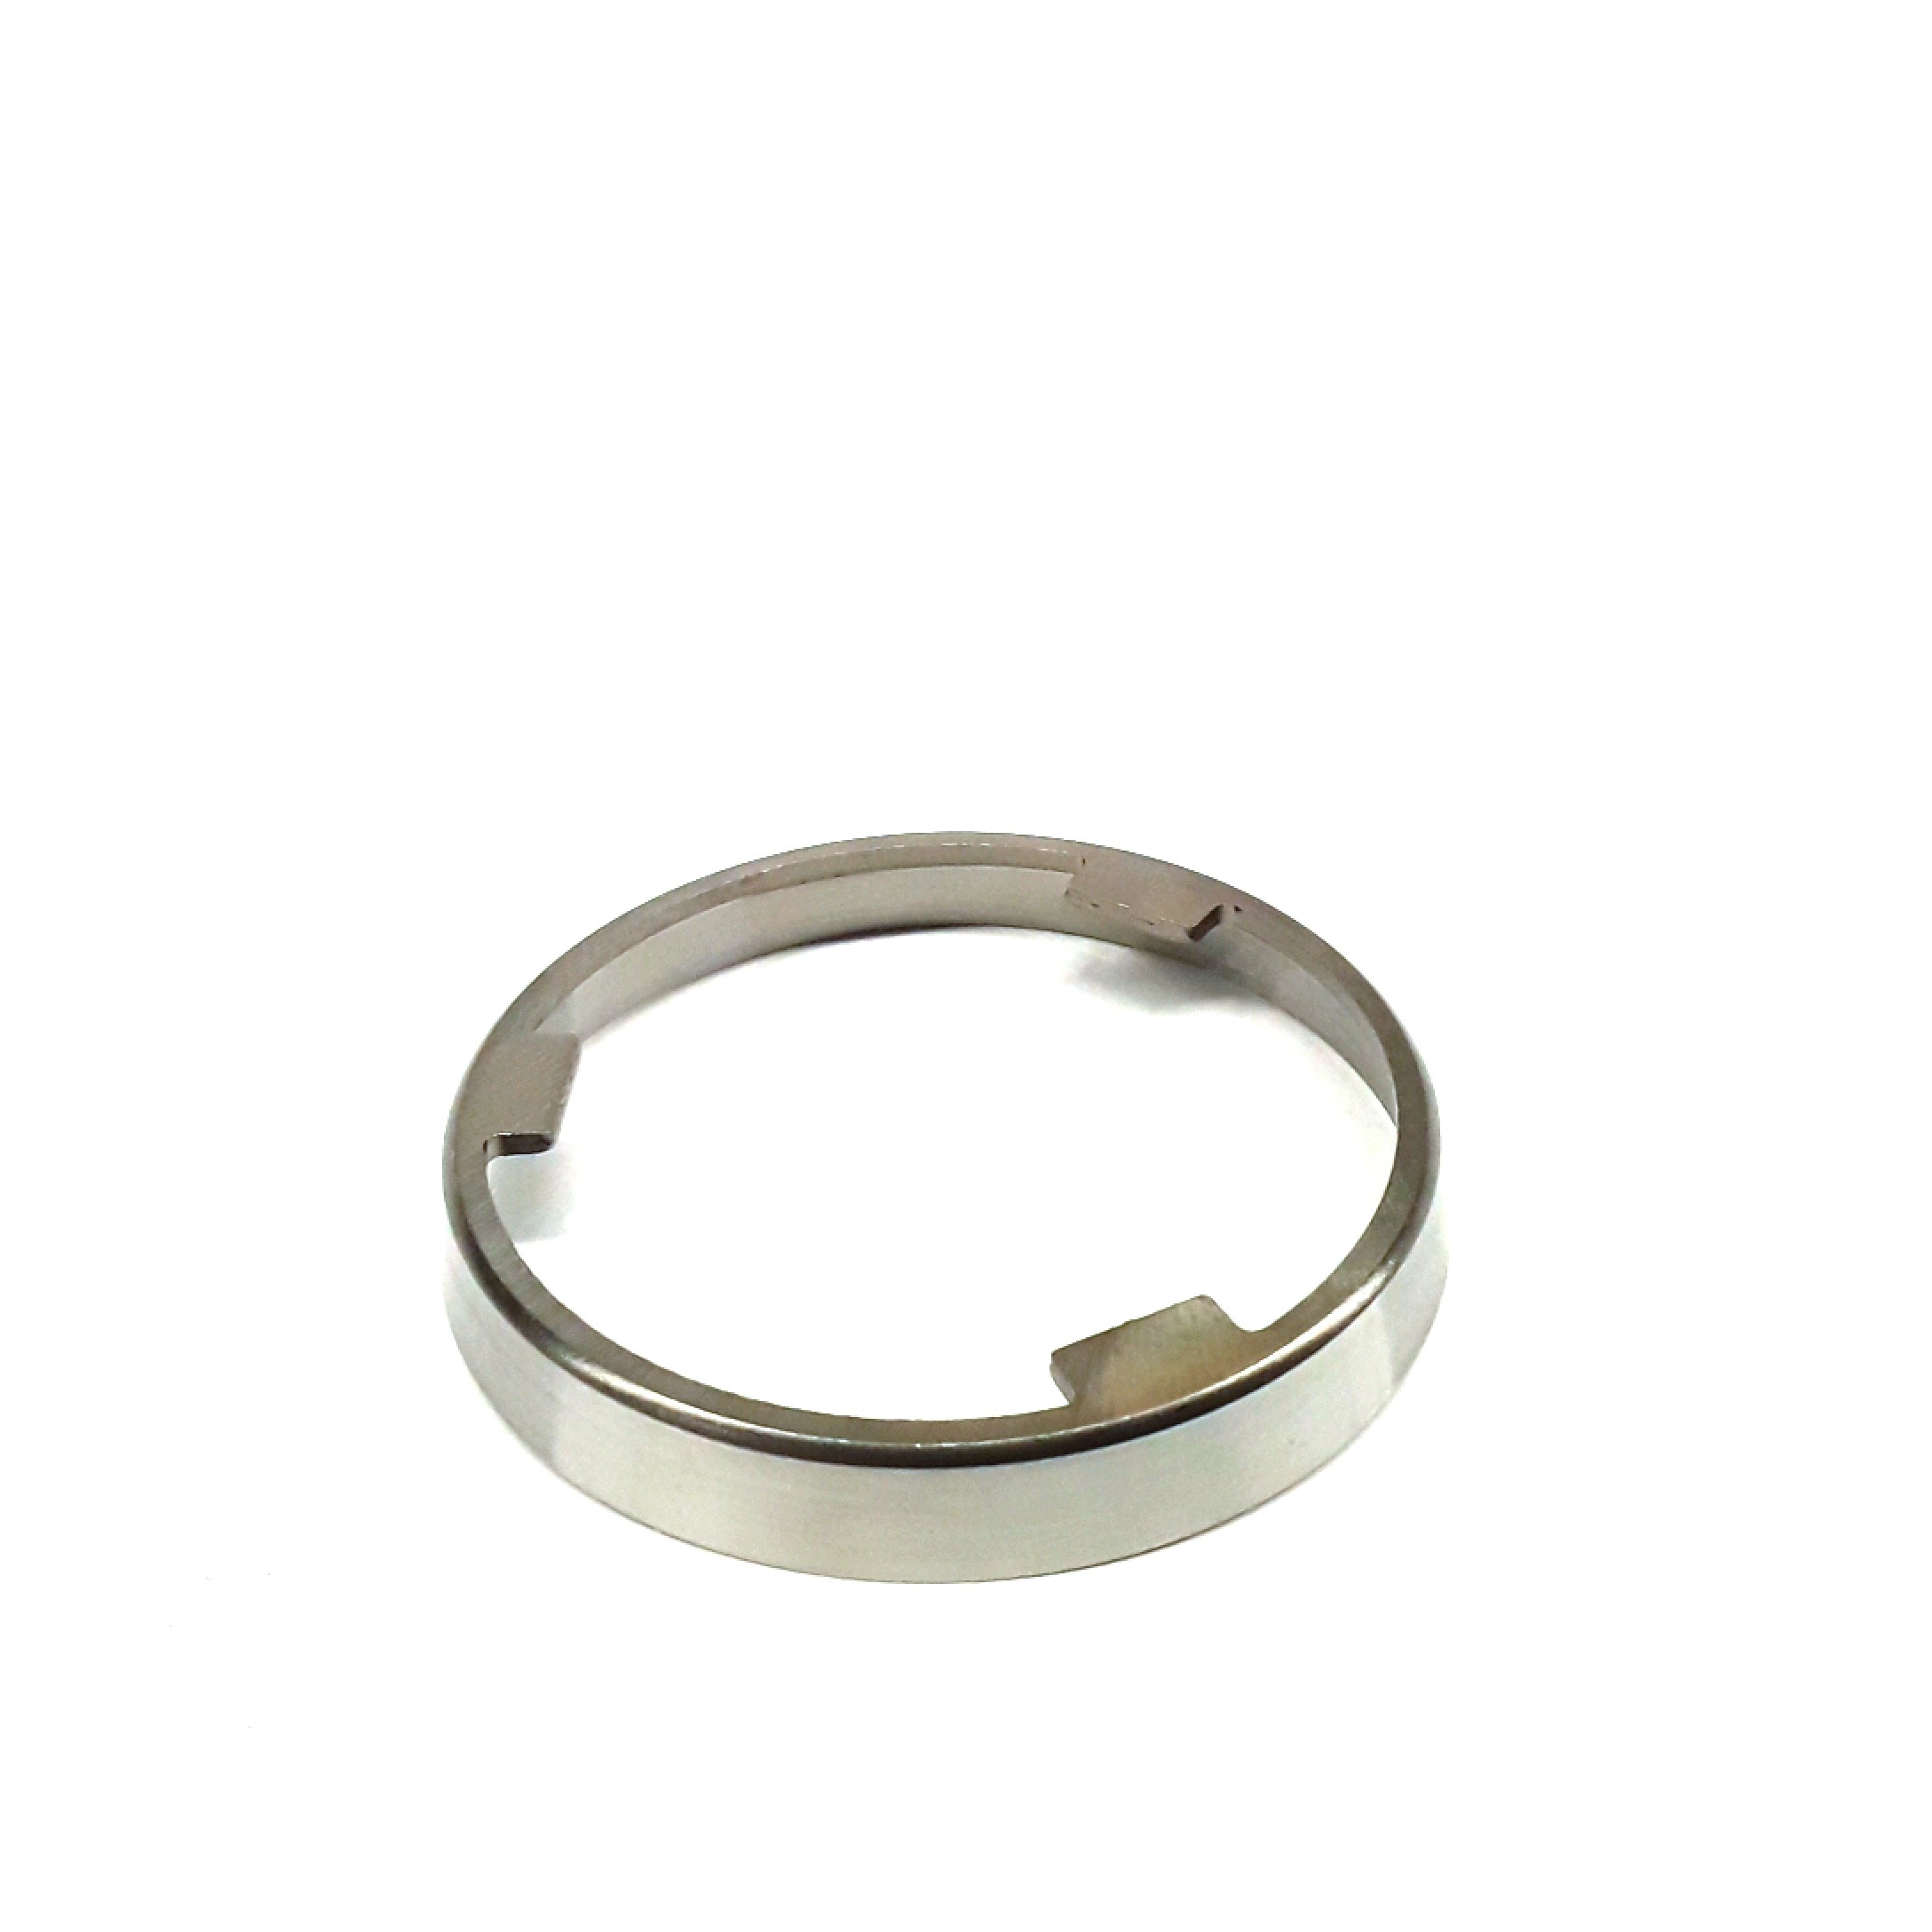 Outer Ring. Oem, Group